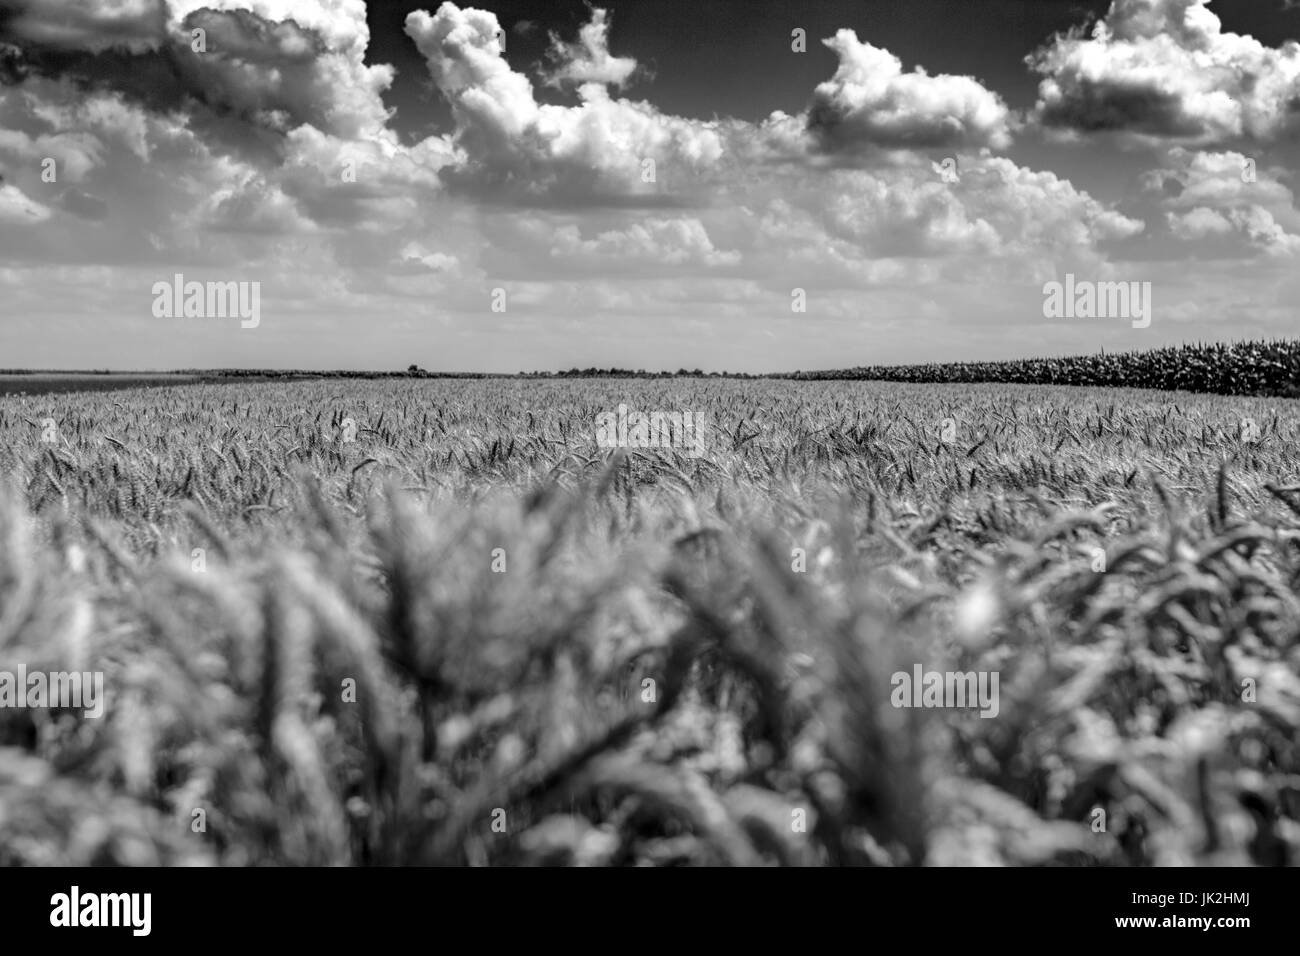 Wheat field on a sunny day with occasional clouds - Stock Image